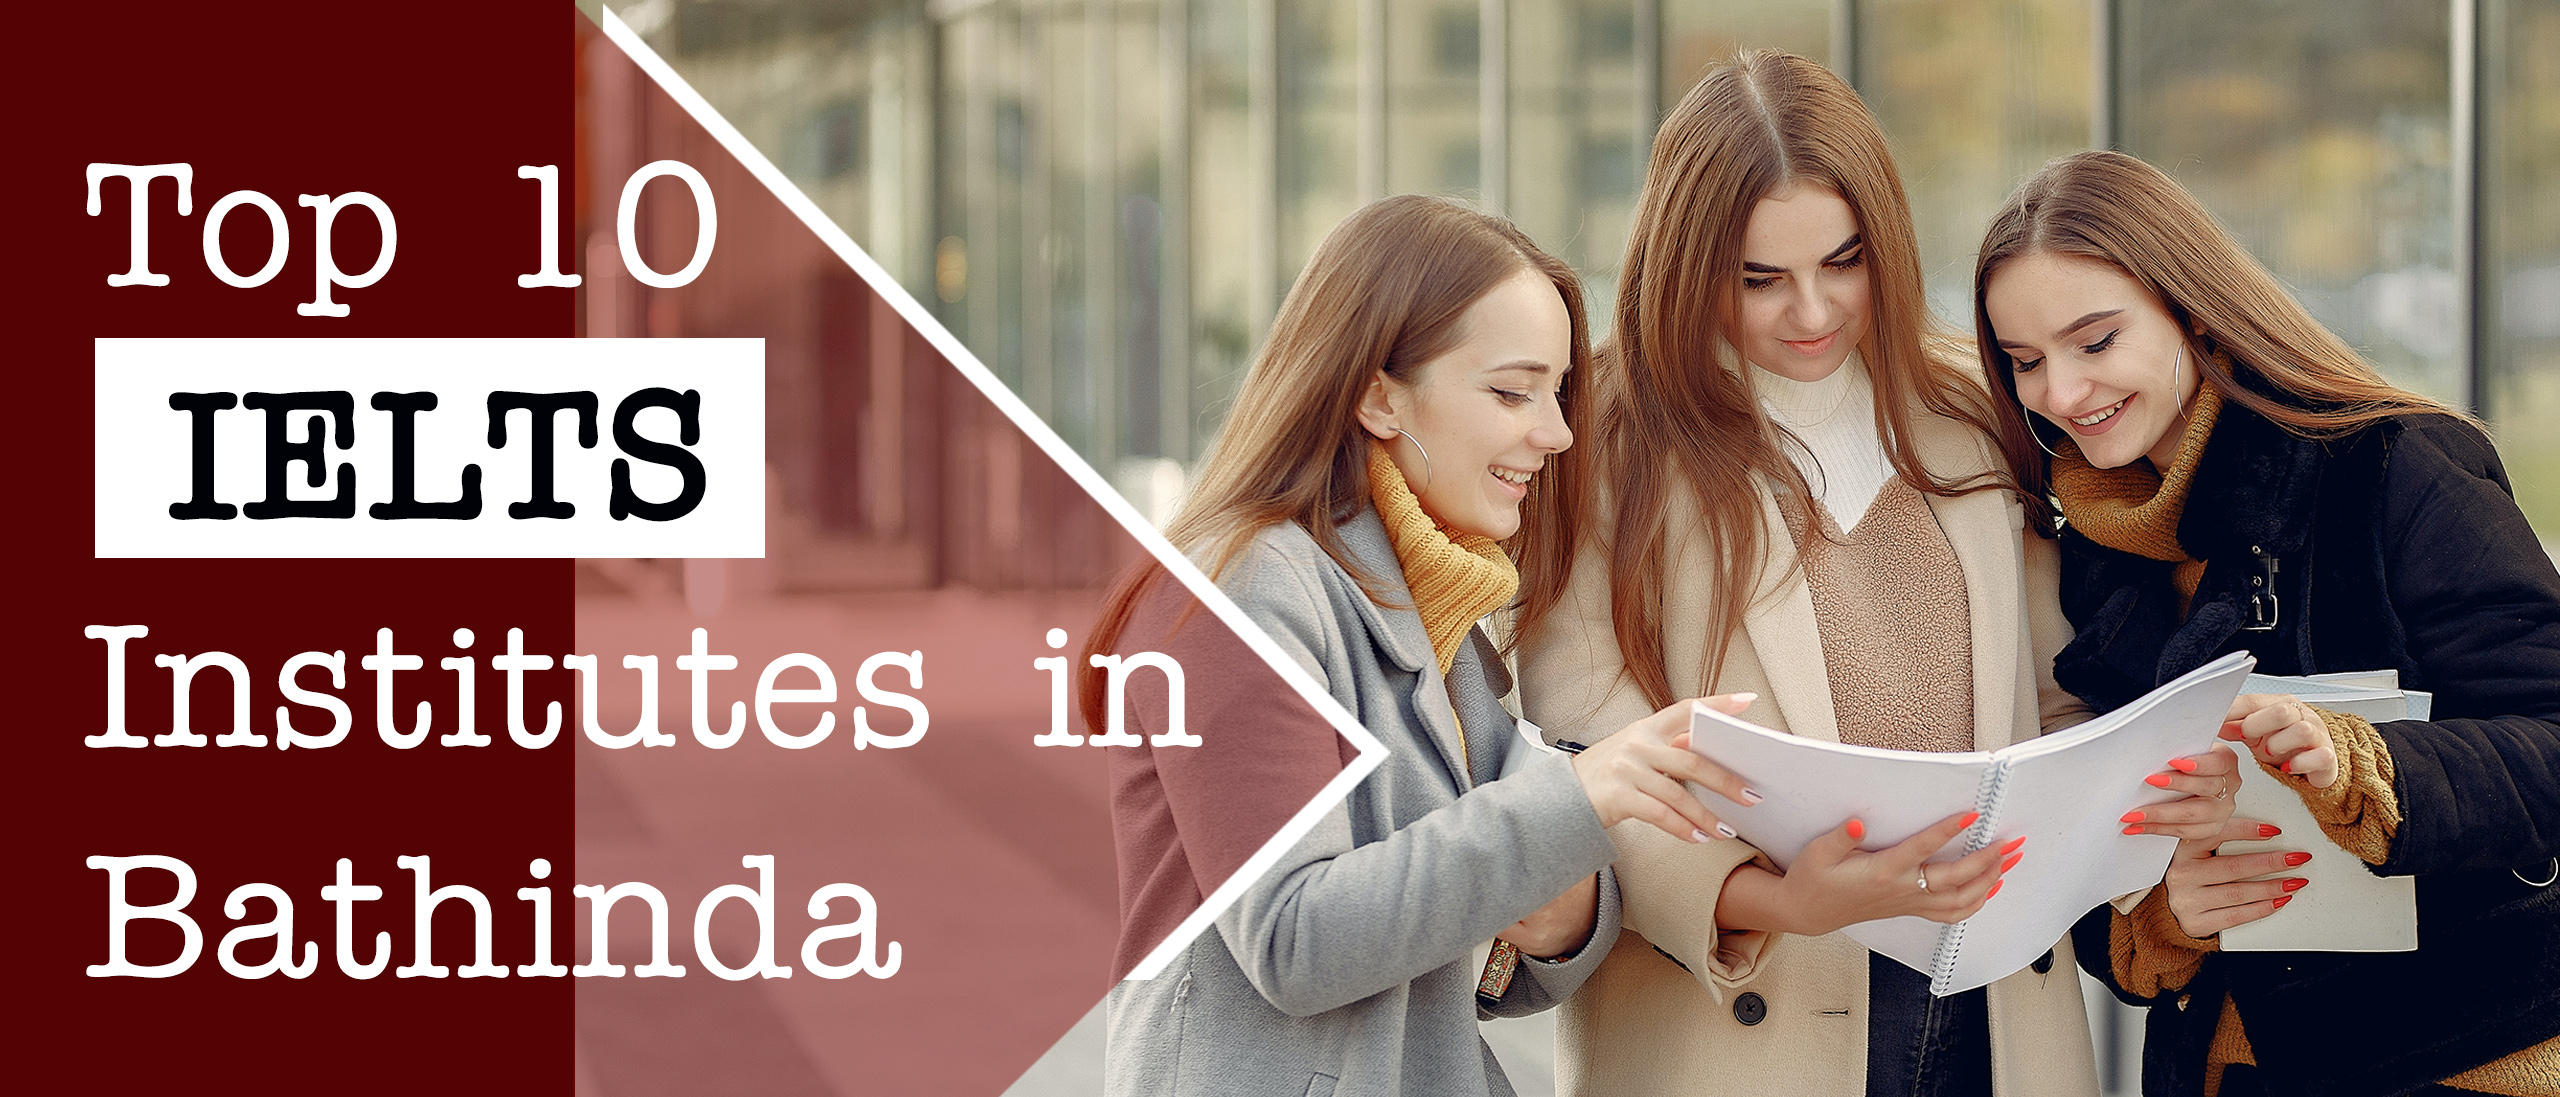 10 Best IELTS Institutes in Bathinda